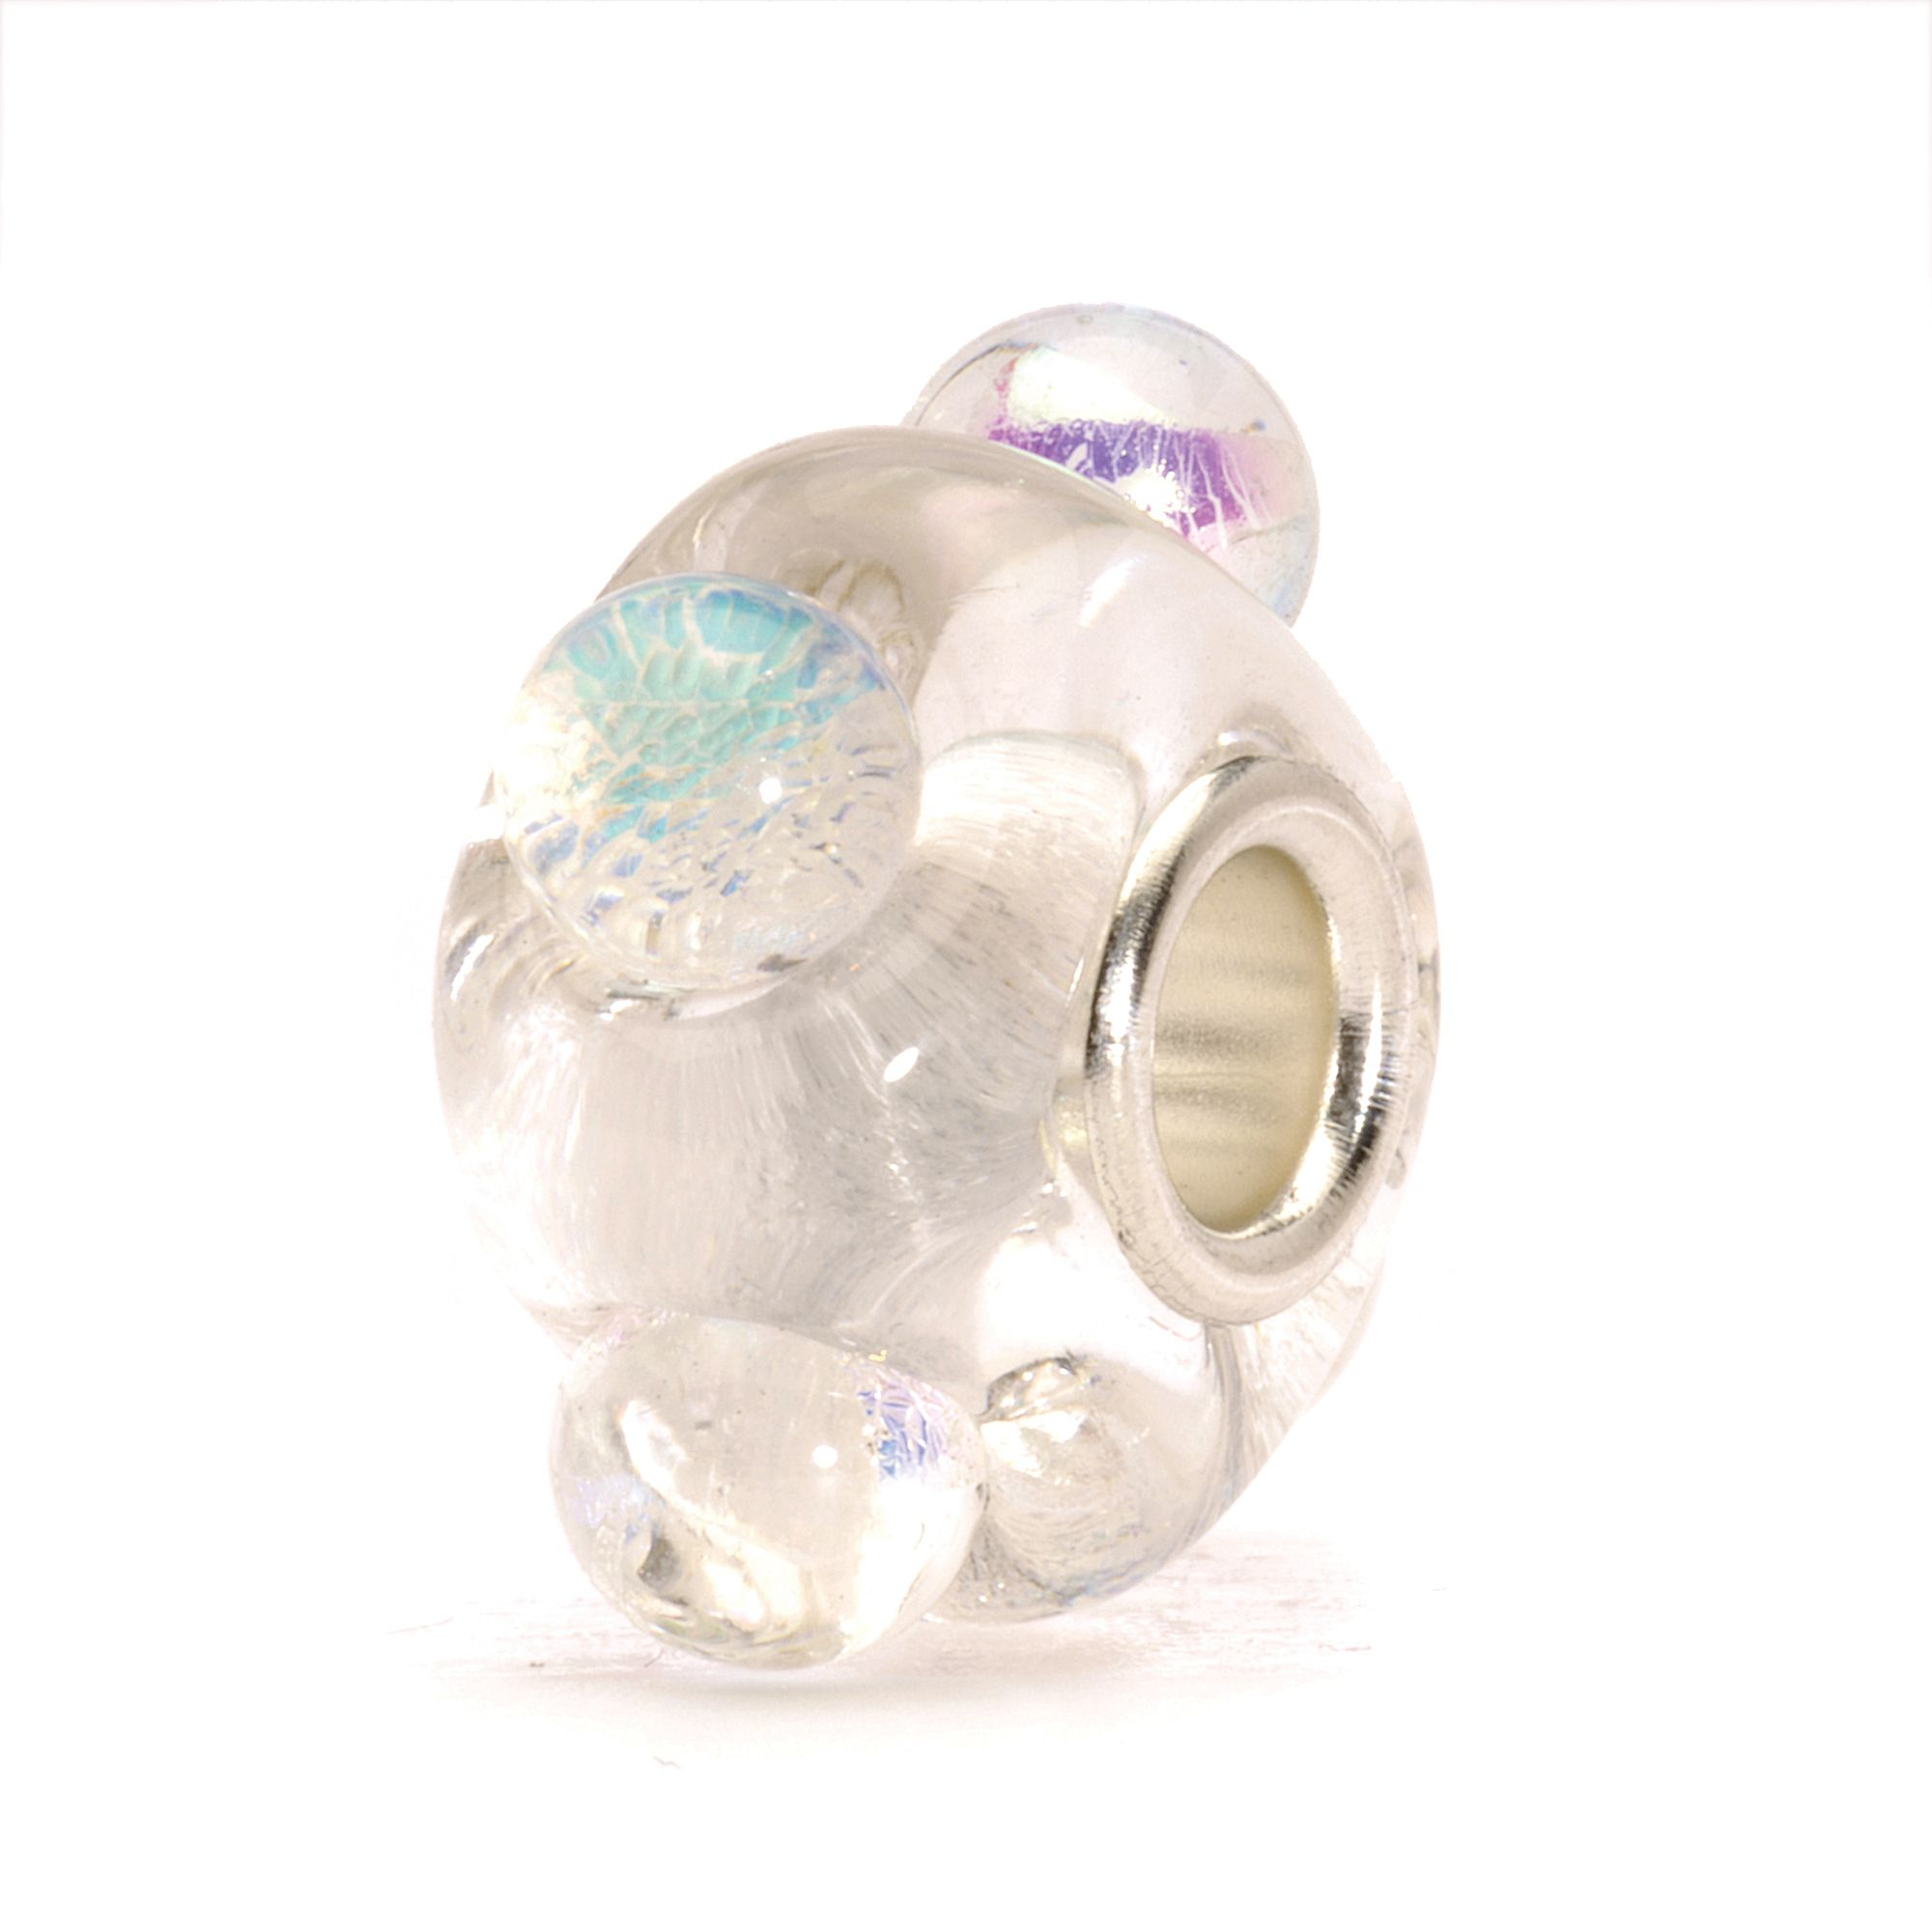 Dichroic Ice glass charm bead